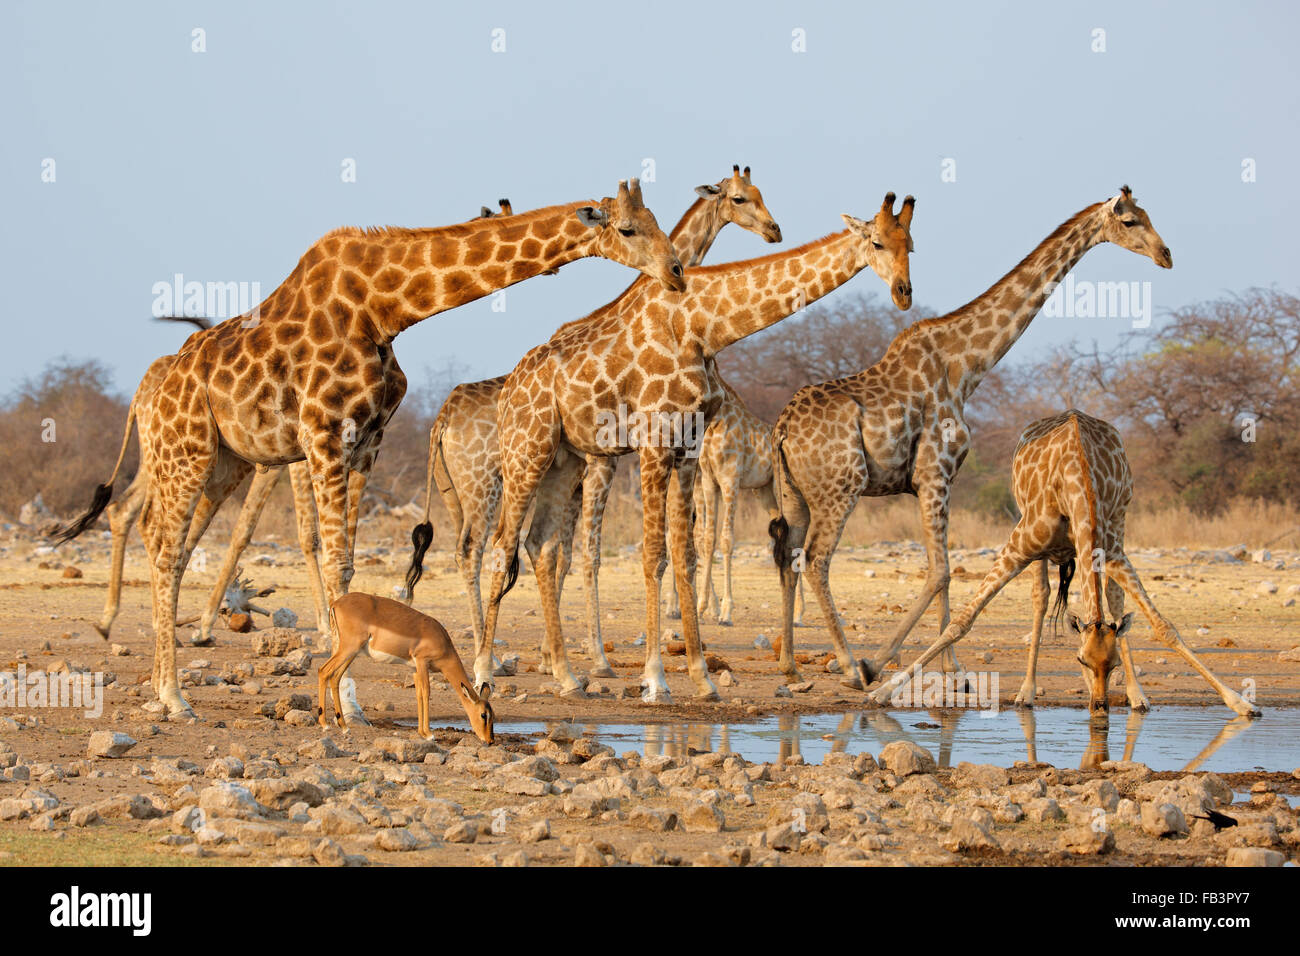 Giraffe herd (Giraffa camelopardalis) at a waterhole, Etosha National Park, Namibia - Stock Image